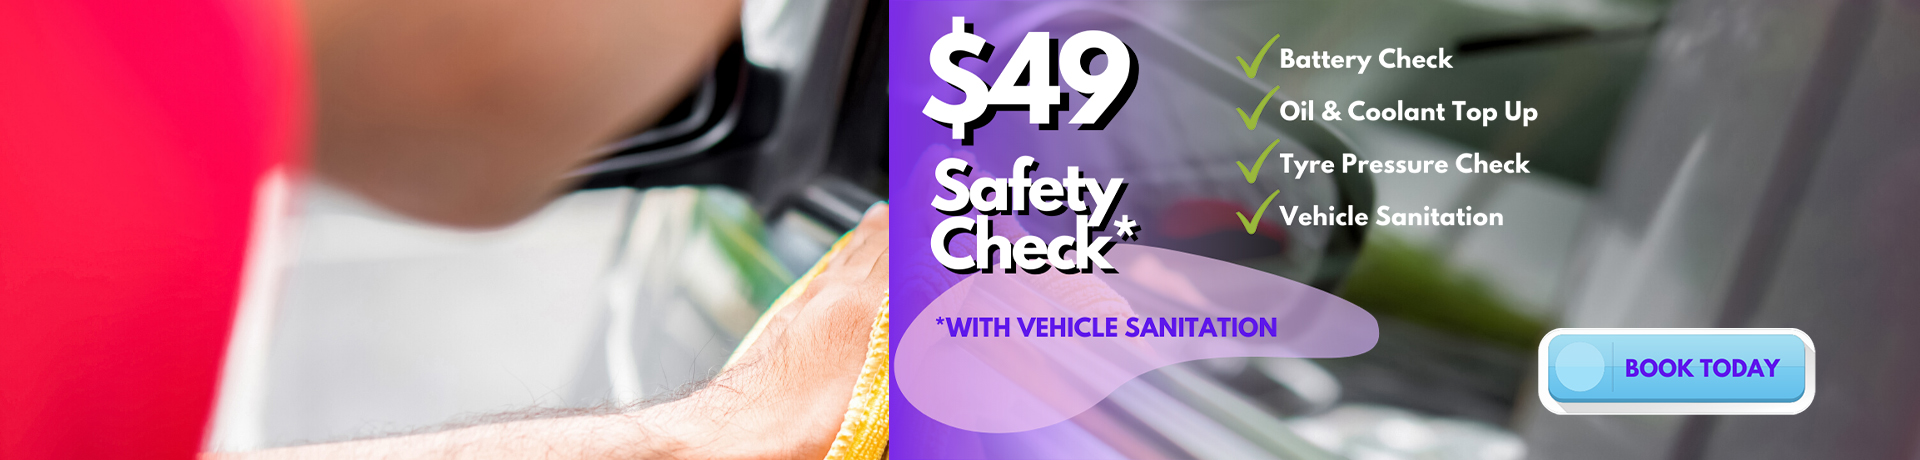 $49 Safety Check with Vehicle Sanitation